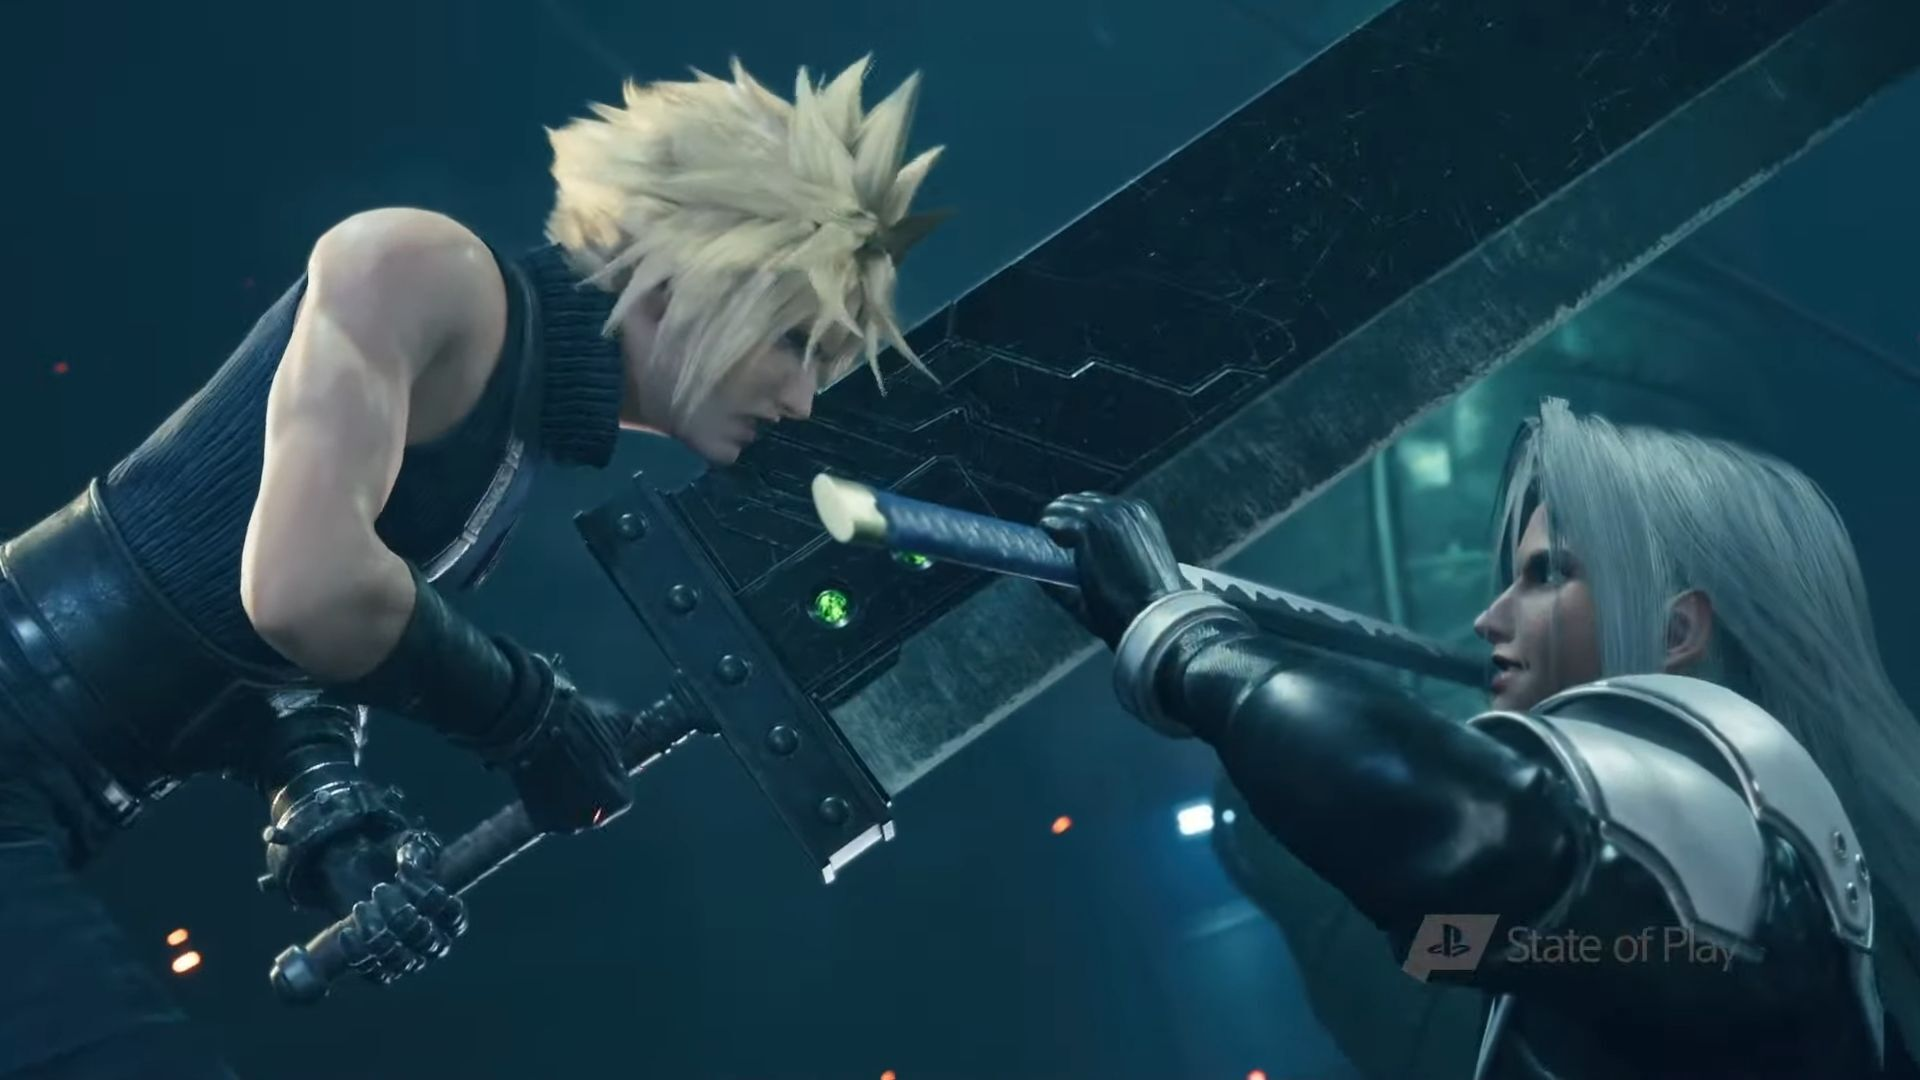 Final Fantasy 7 Remake: Intergrade adds new story content and a free PS5  upgrade in October | GamesRadar+